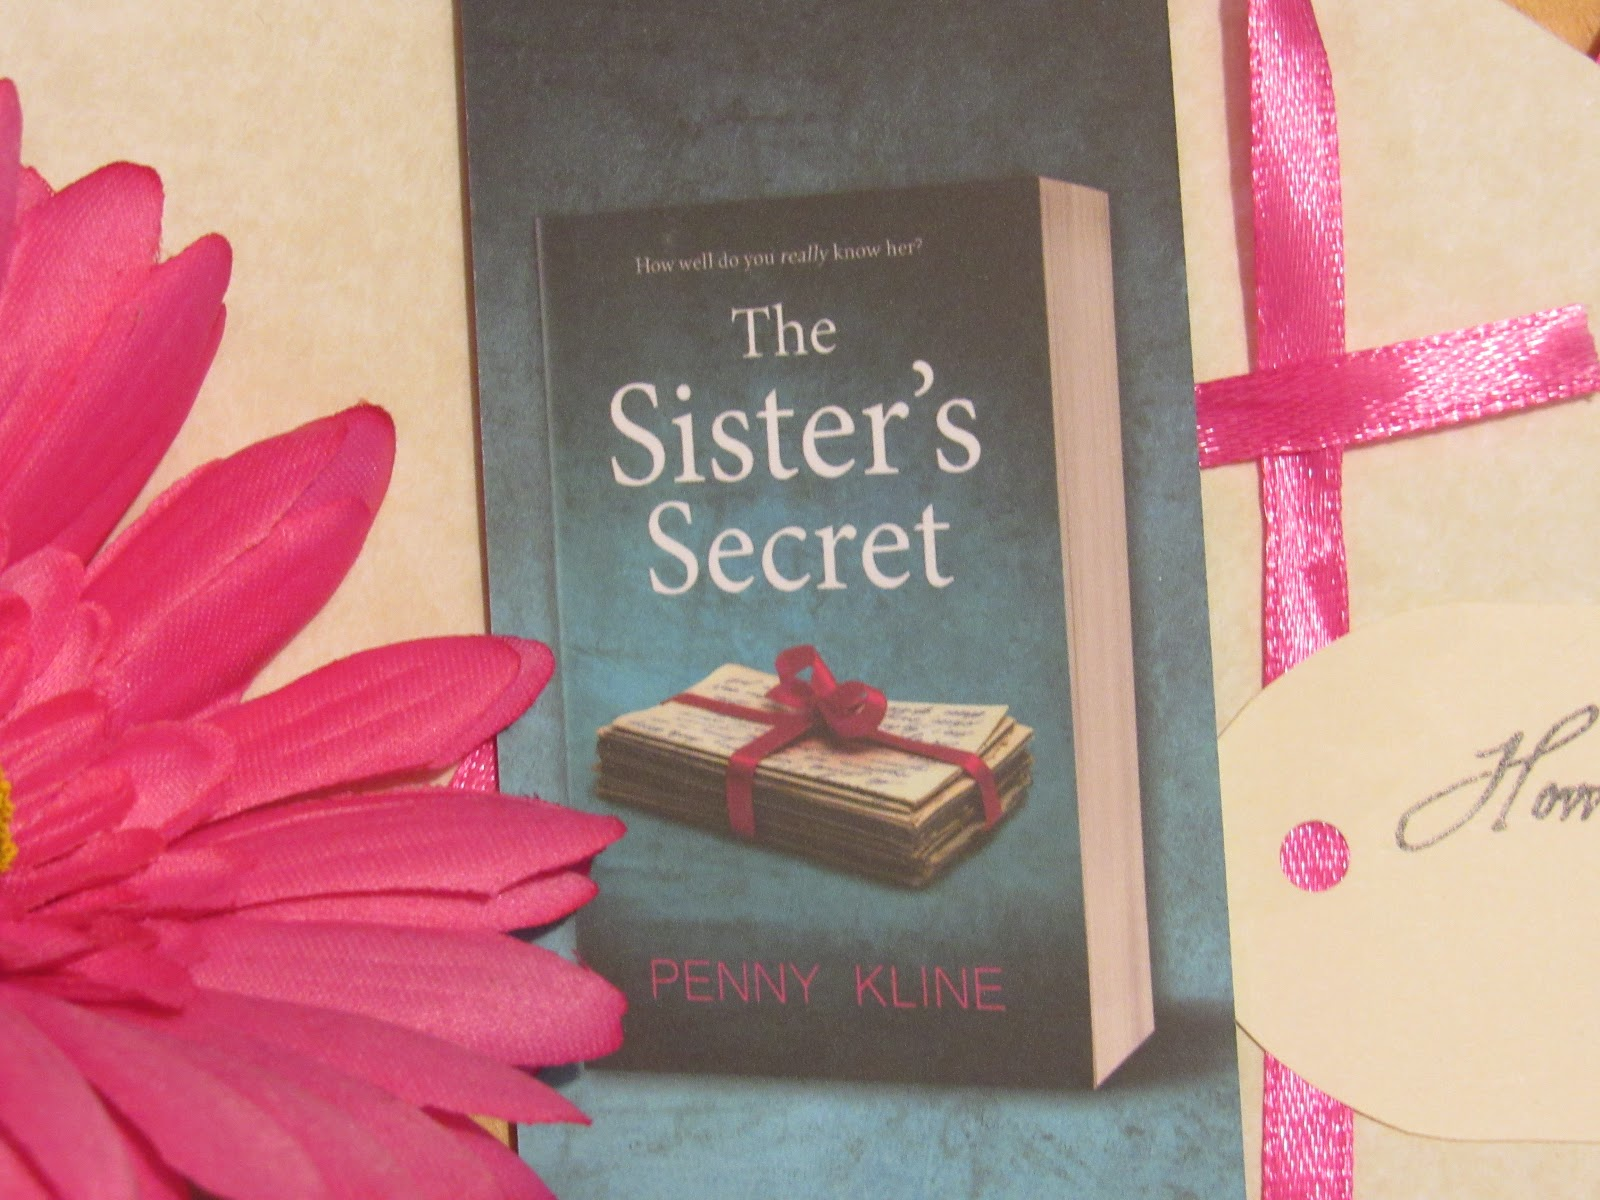 Blooming Fiction, lifestyle blog, The Sister's Secret cover reveal